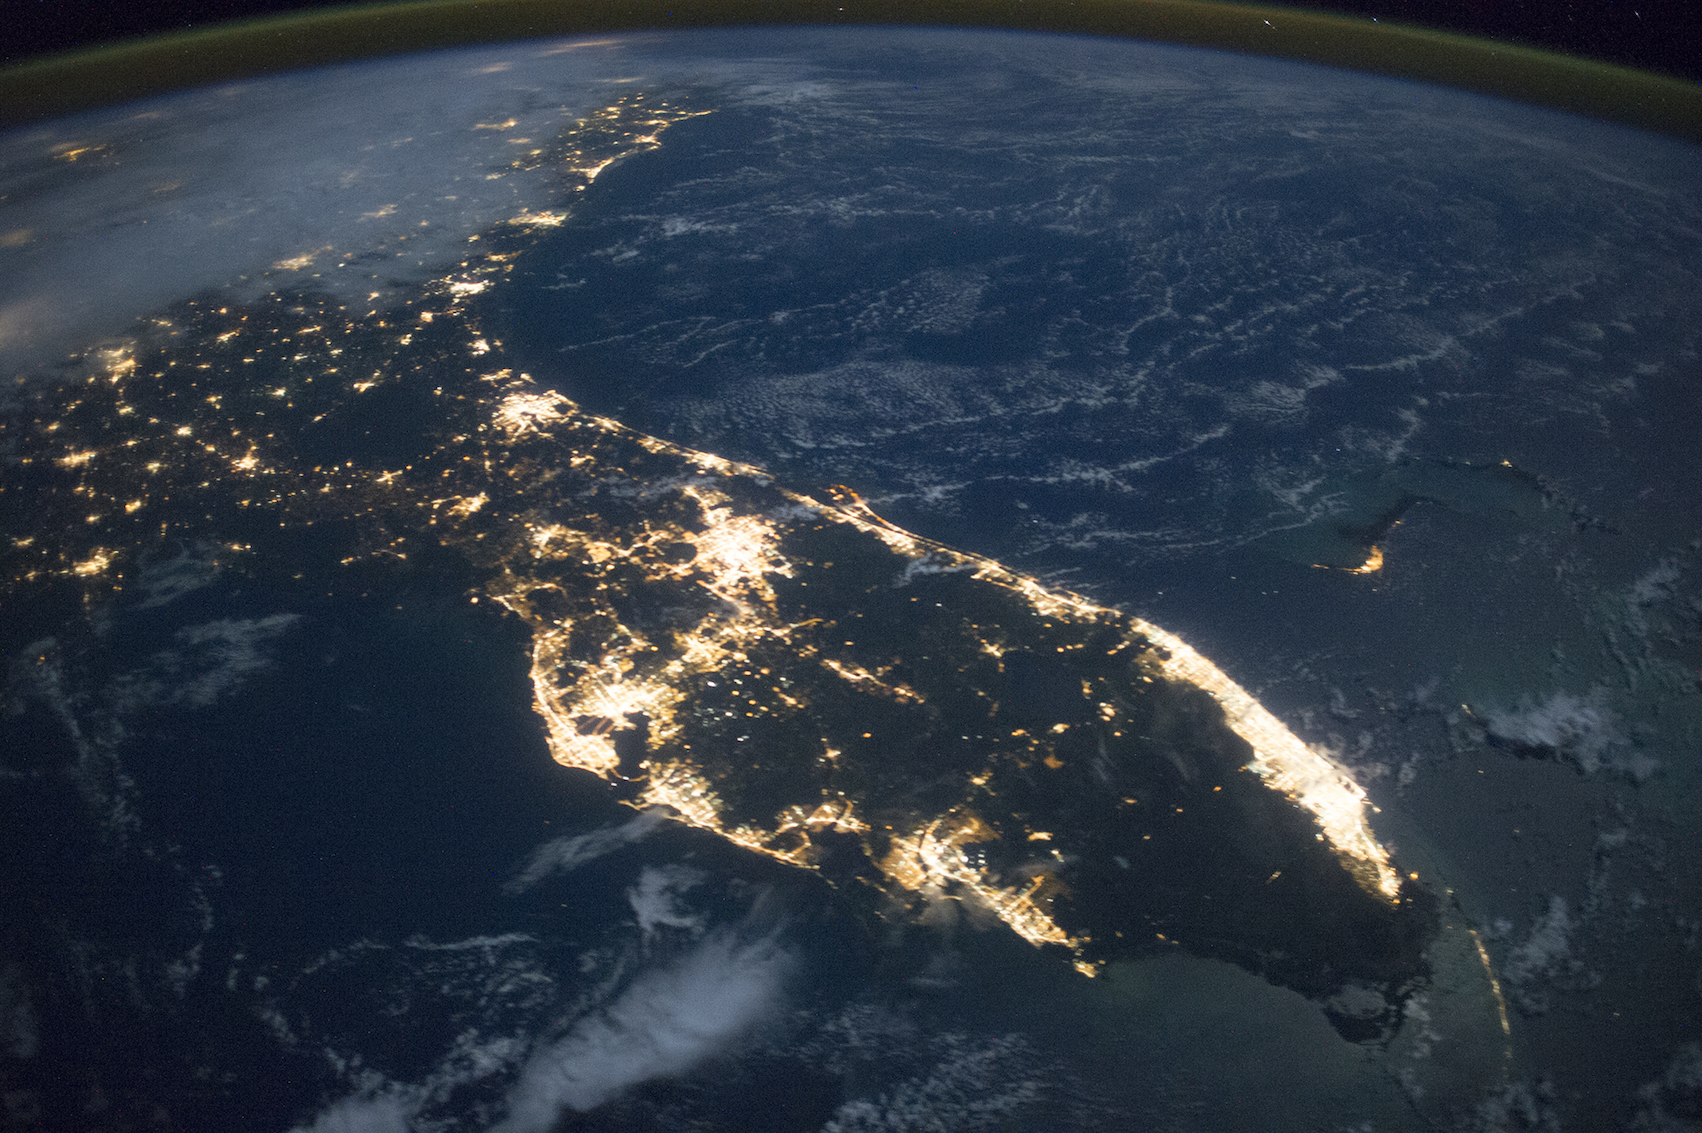 Today's Image of the Day comes from the NASA Earth Observatory and features a look at the state of Florida as seen from space at night.